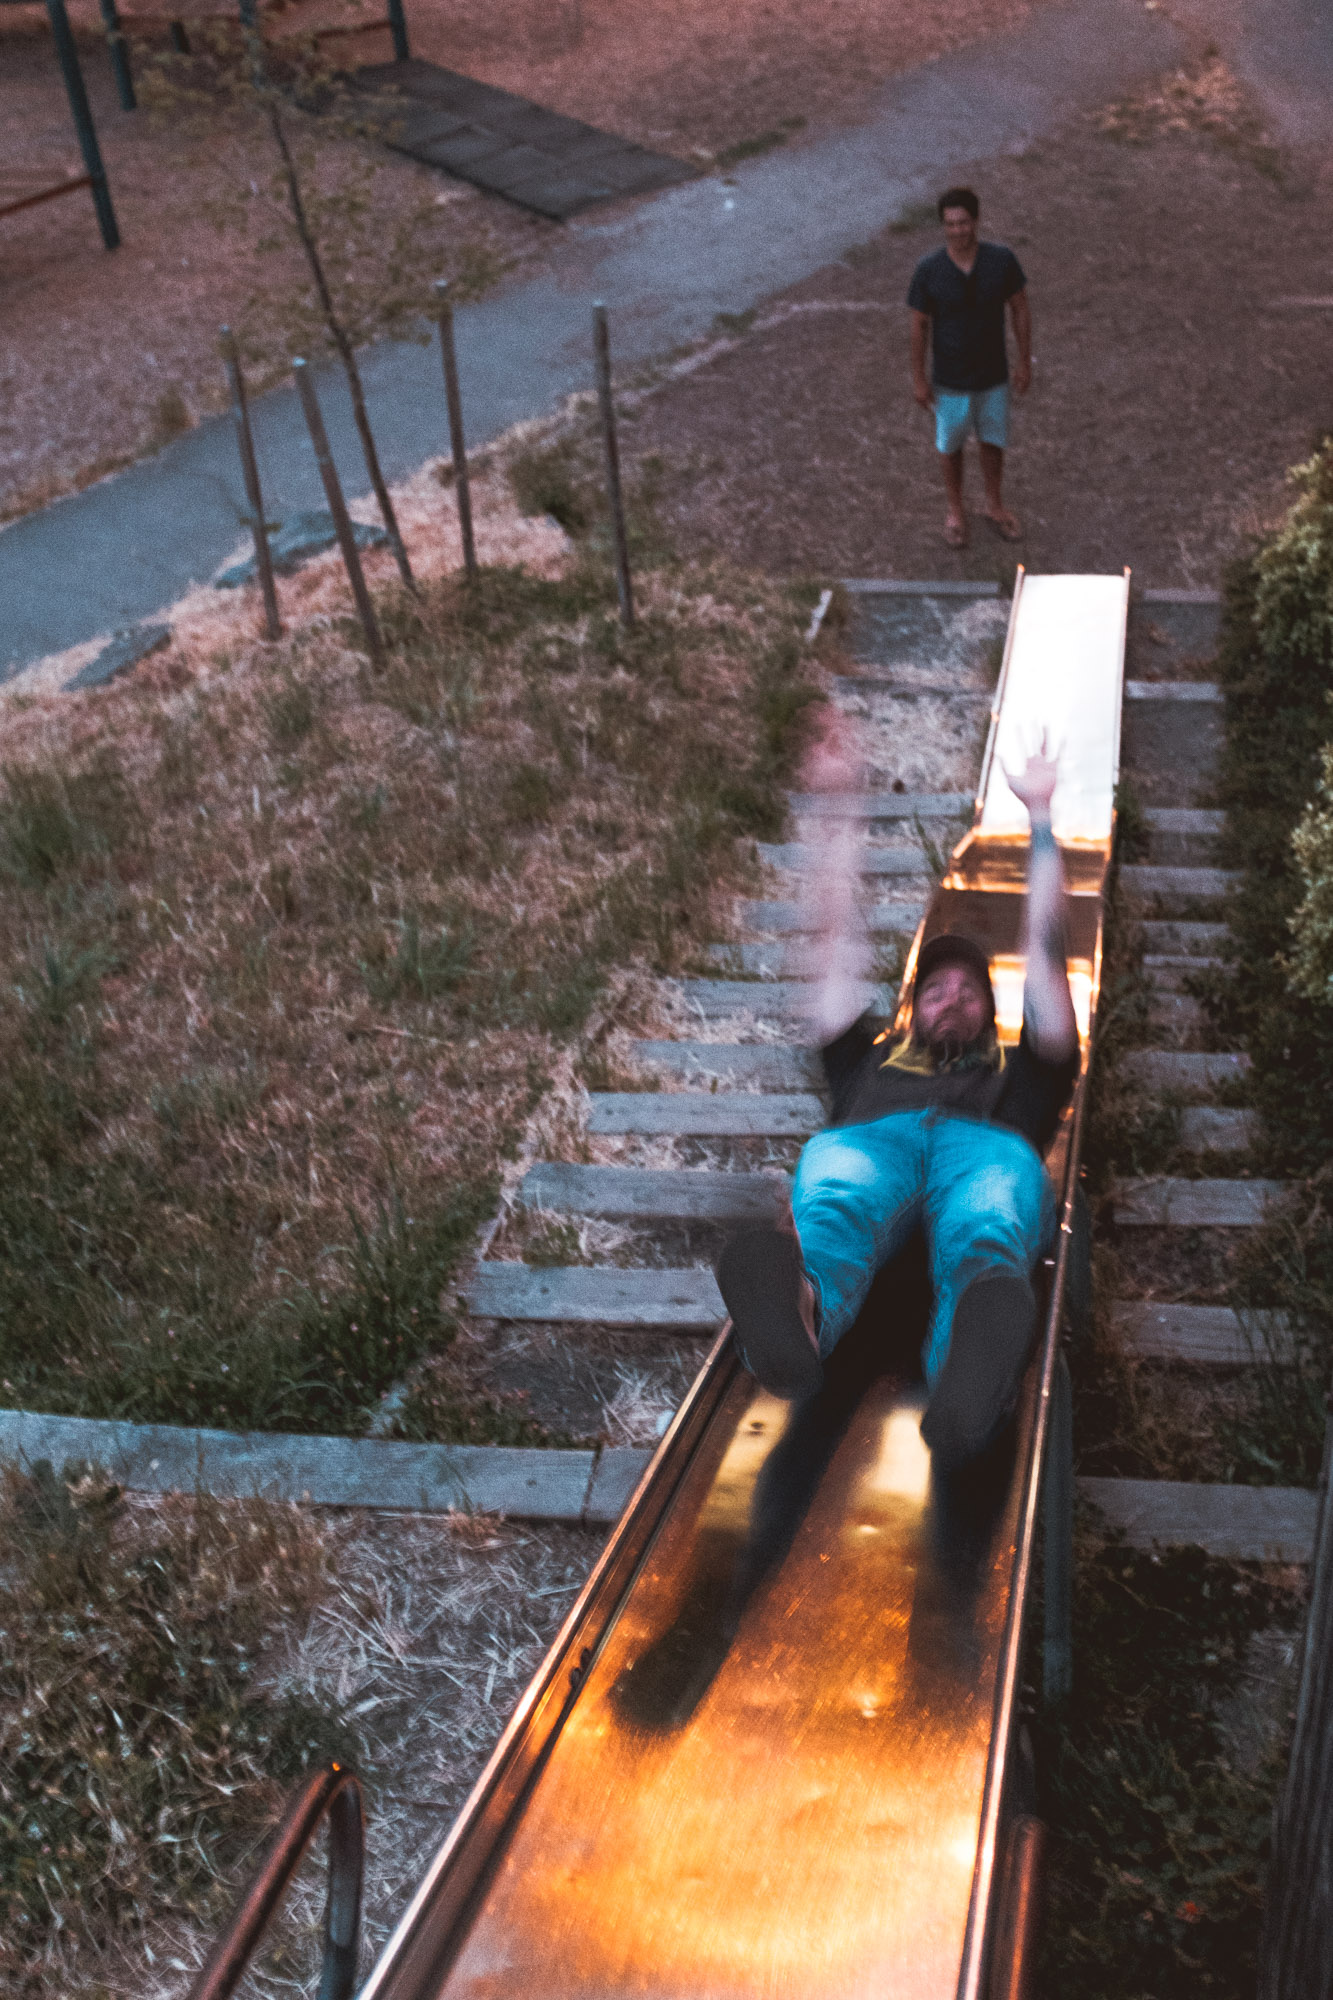 Tony-going-down-slide-frank-Portland-Oregon